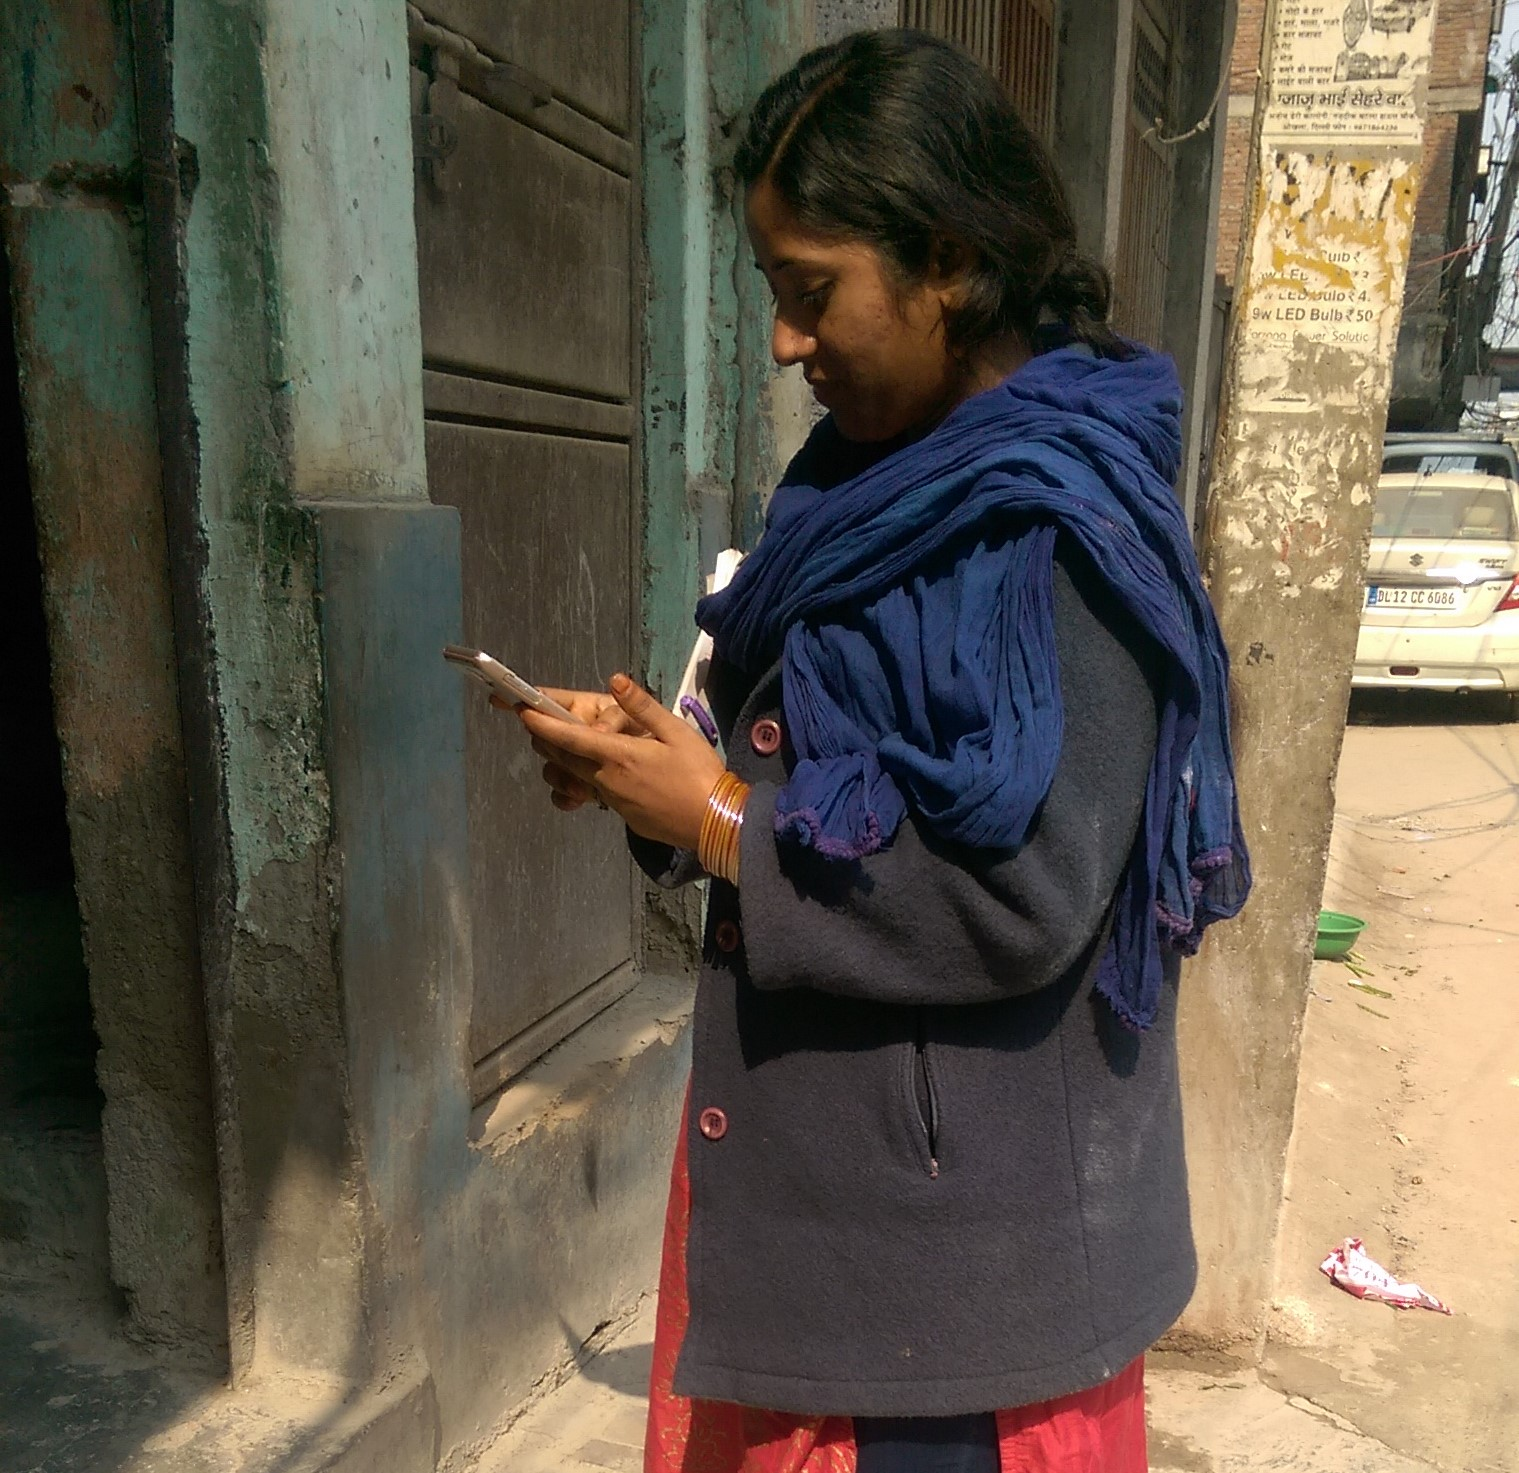 Data collection by ASHAs using ODK Collect